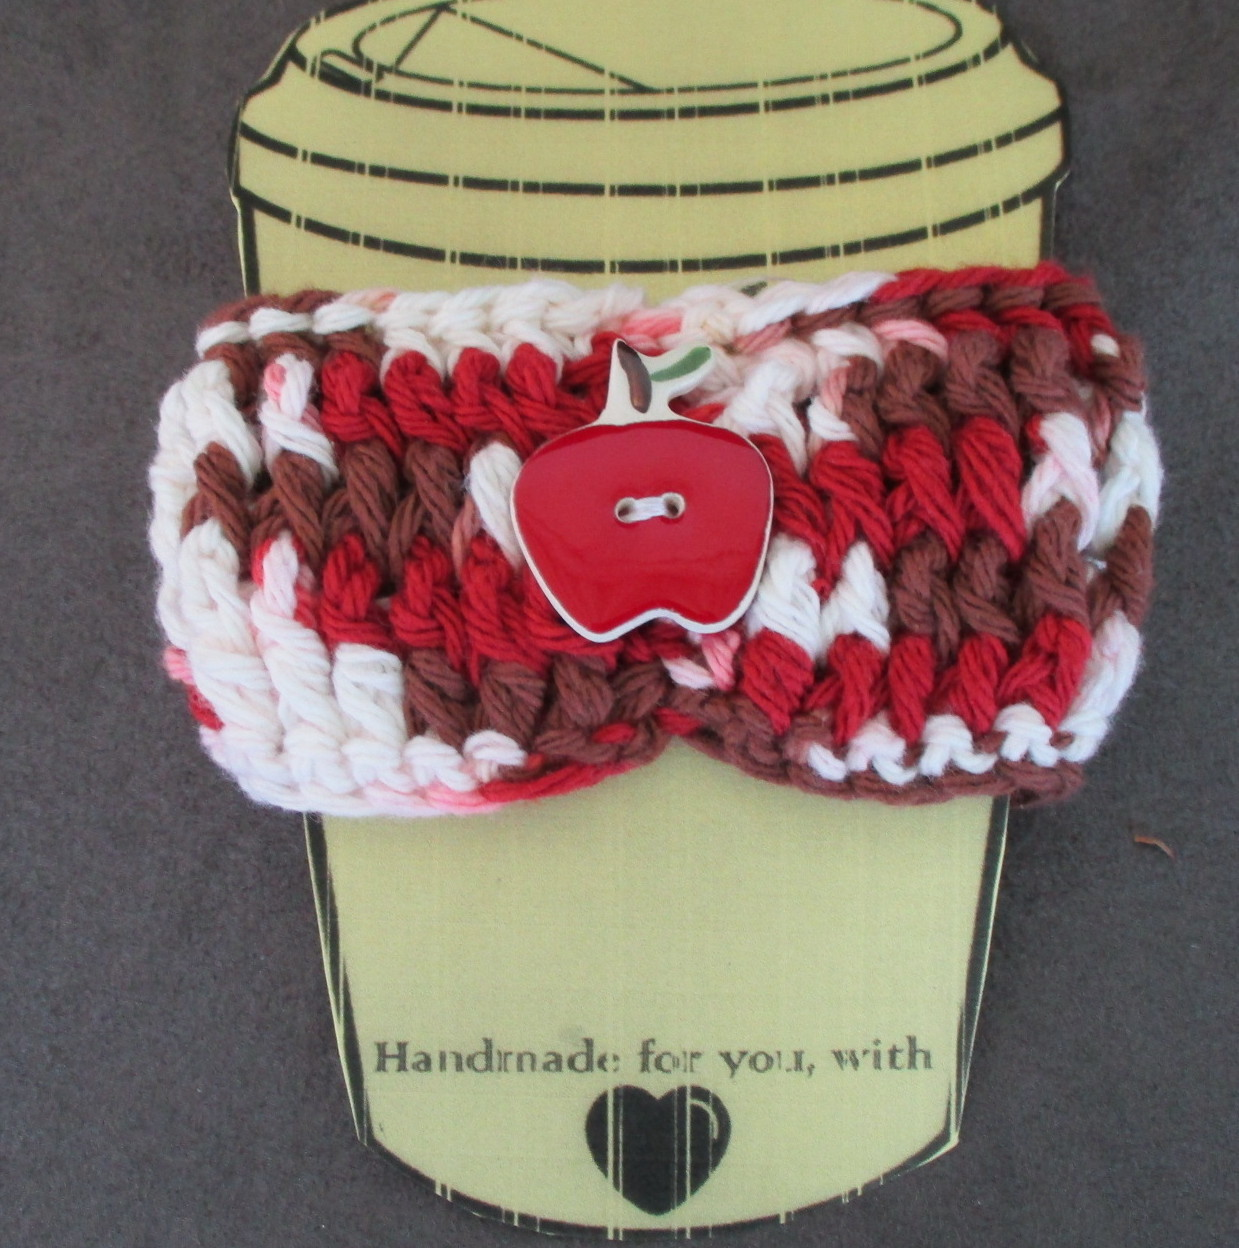 To Go Cup Cozy Sleeve in red brown and white with red ceramic apple shape button